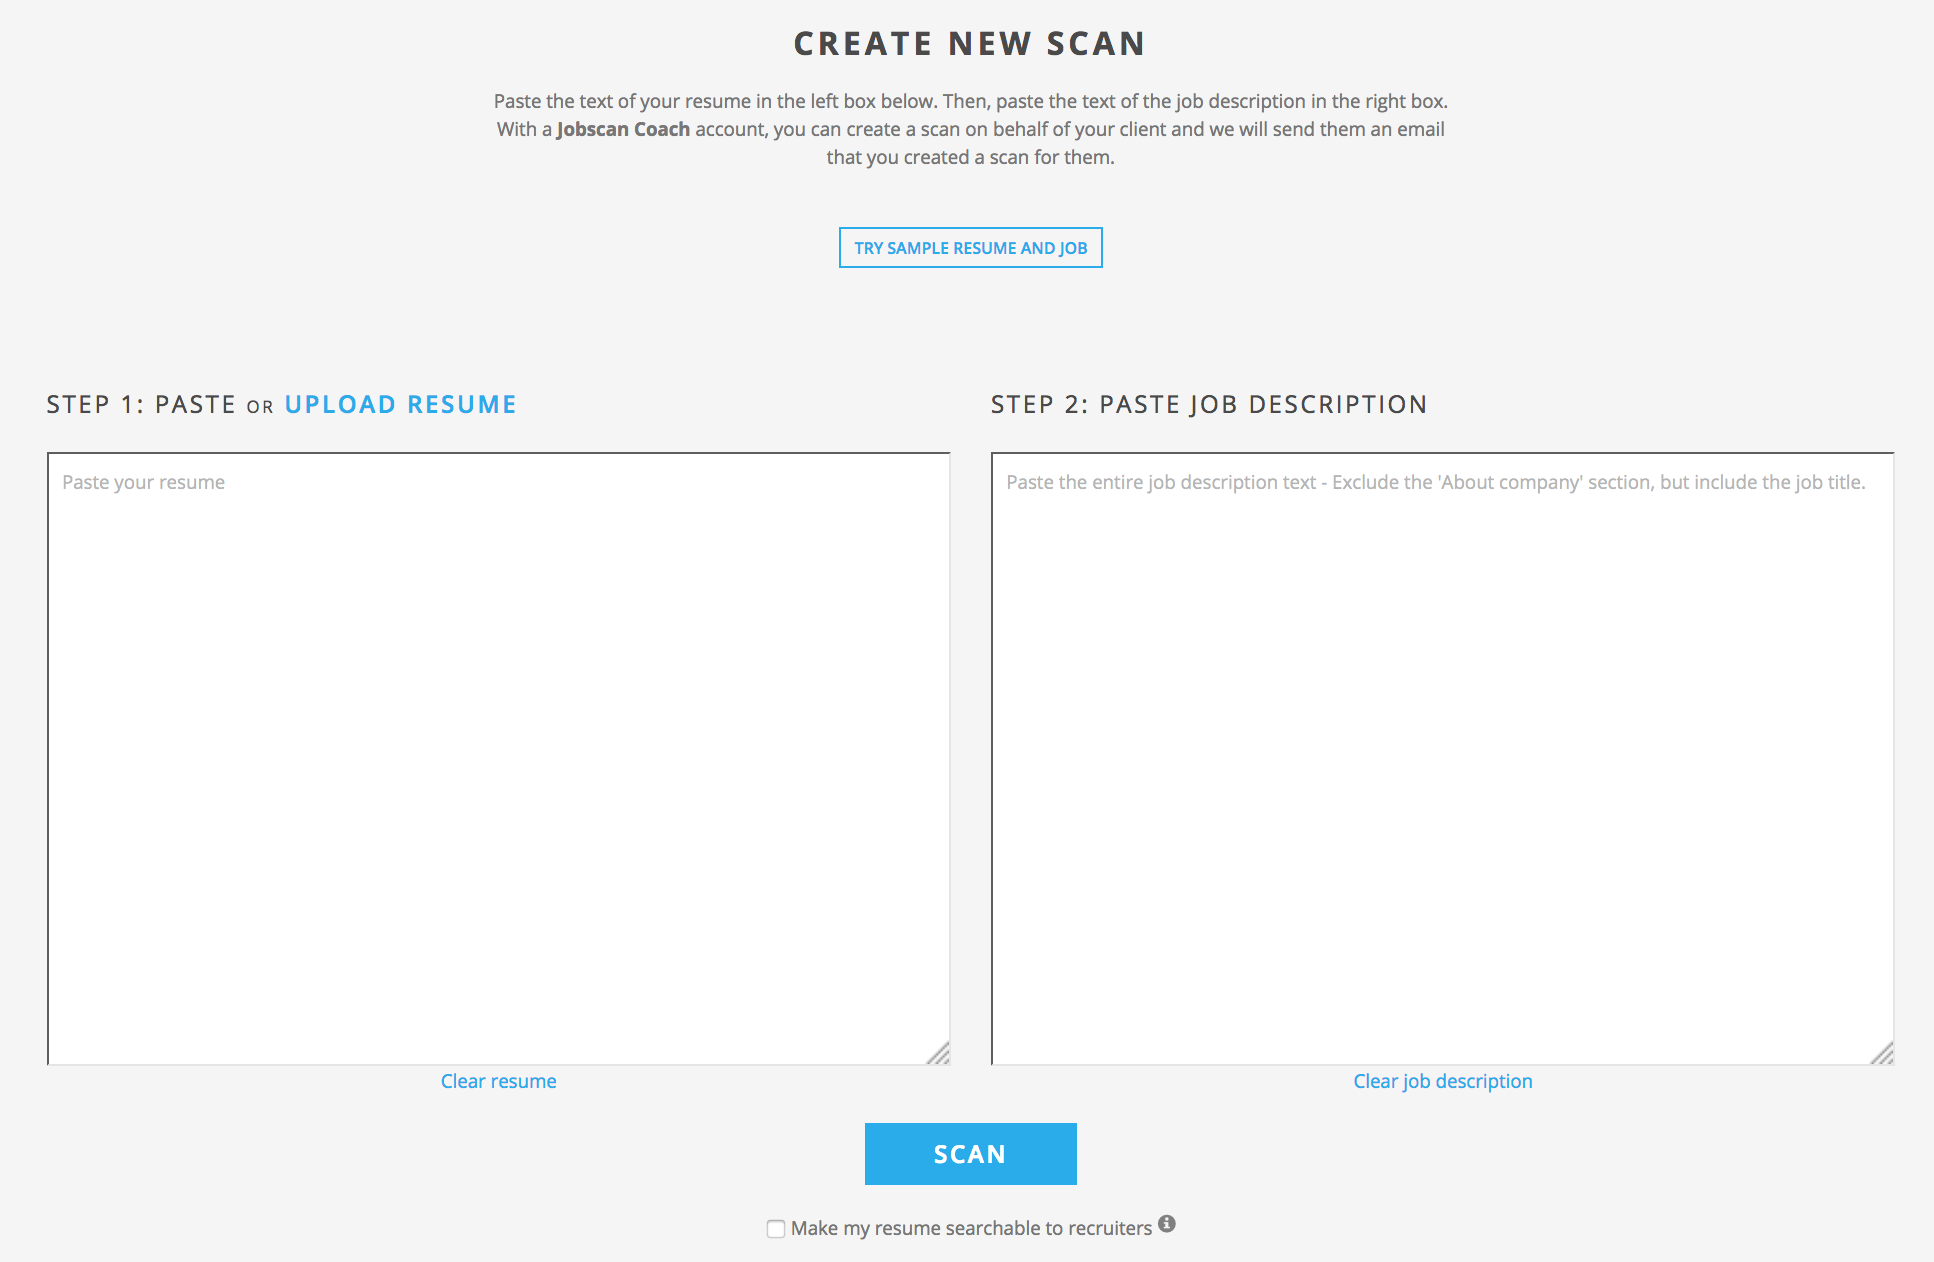 jobscan co free tool for getting your resume past applicant